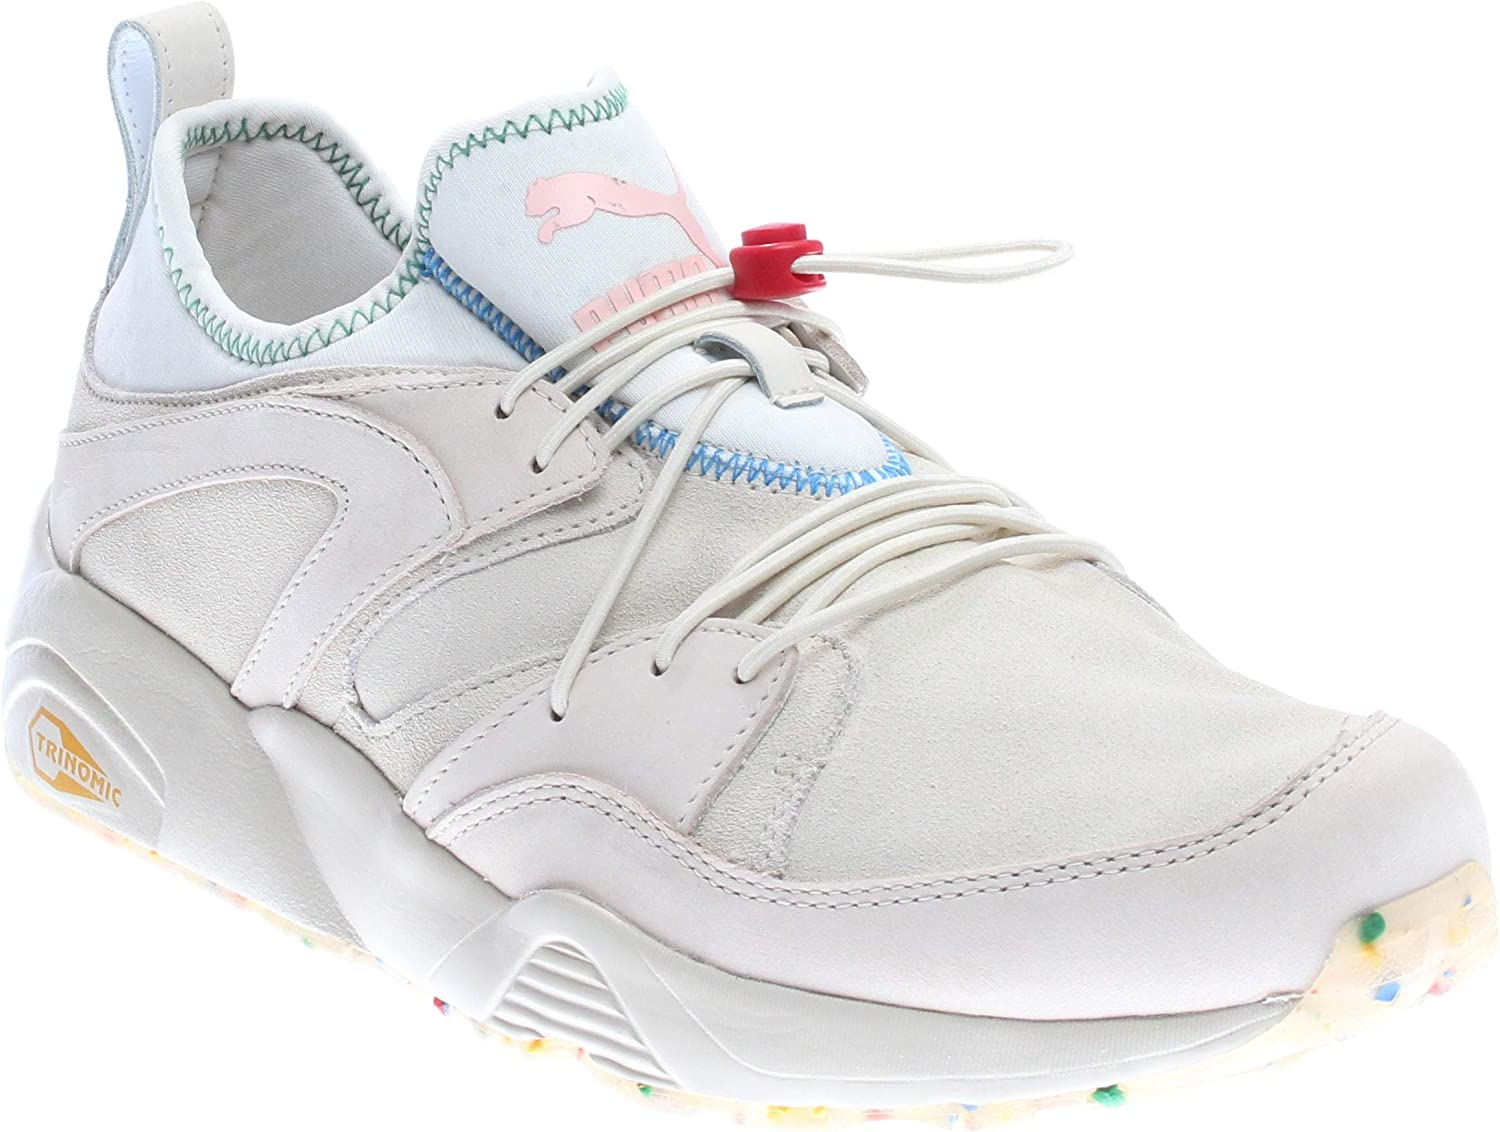 PUMA Mens Blaze of Glory Soft Flag Casual Sneaker